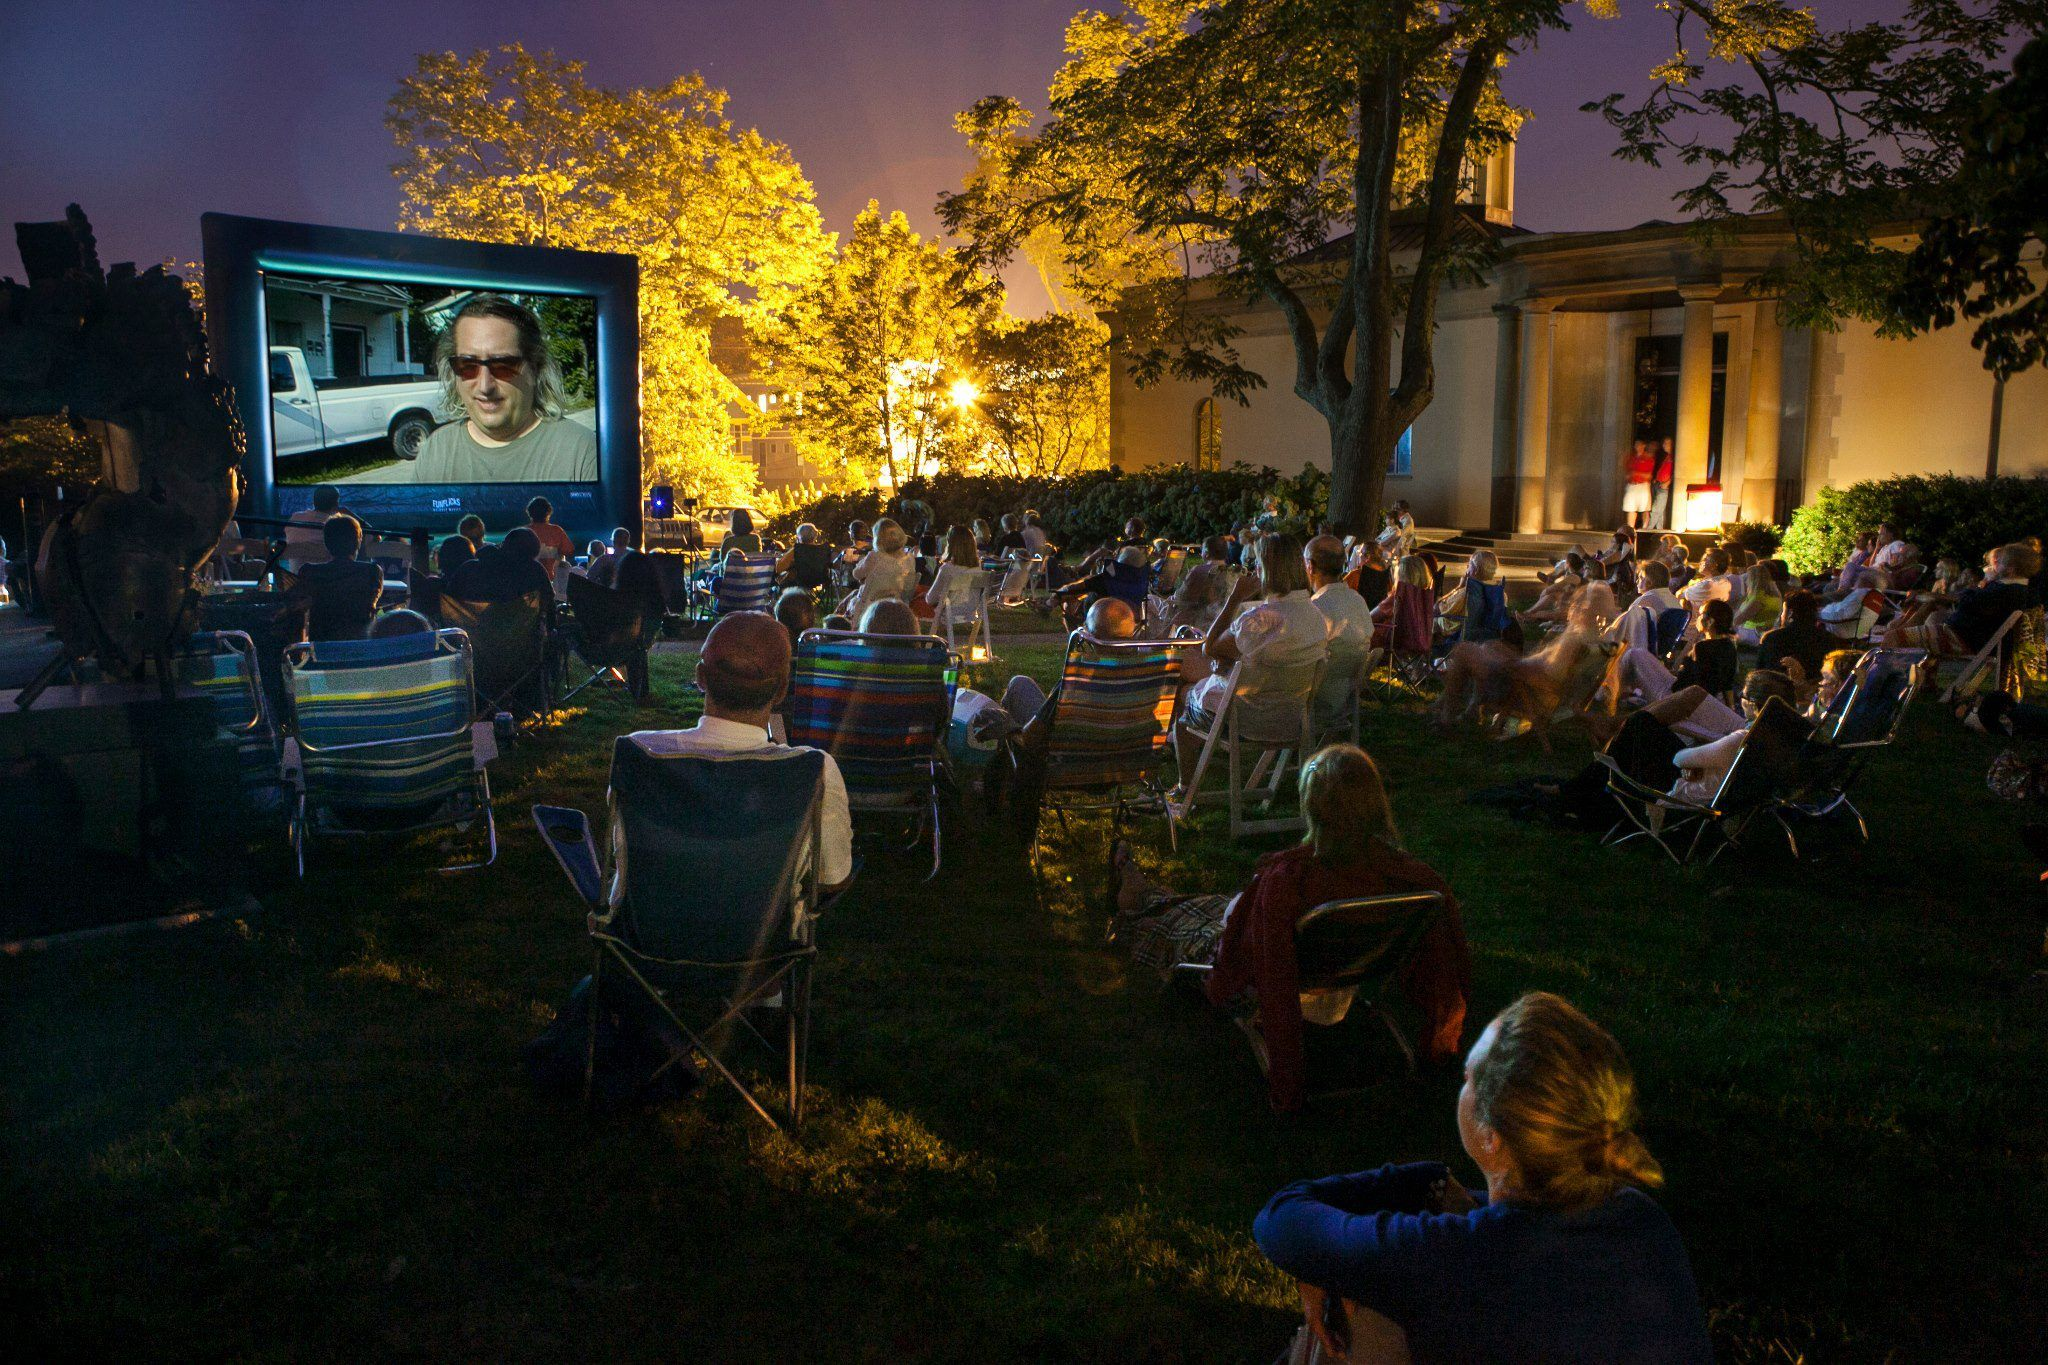 Bringing communities together movie in the park